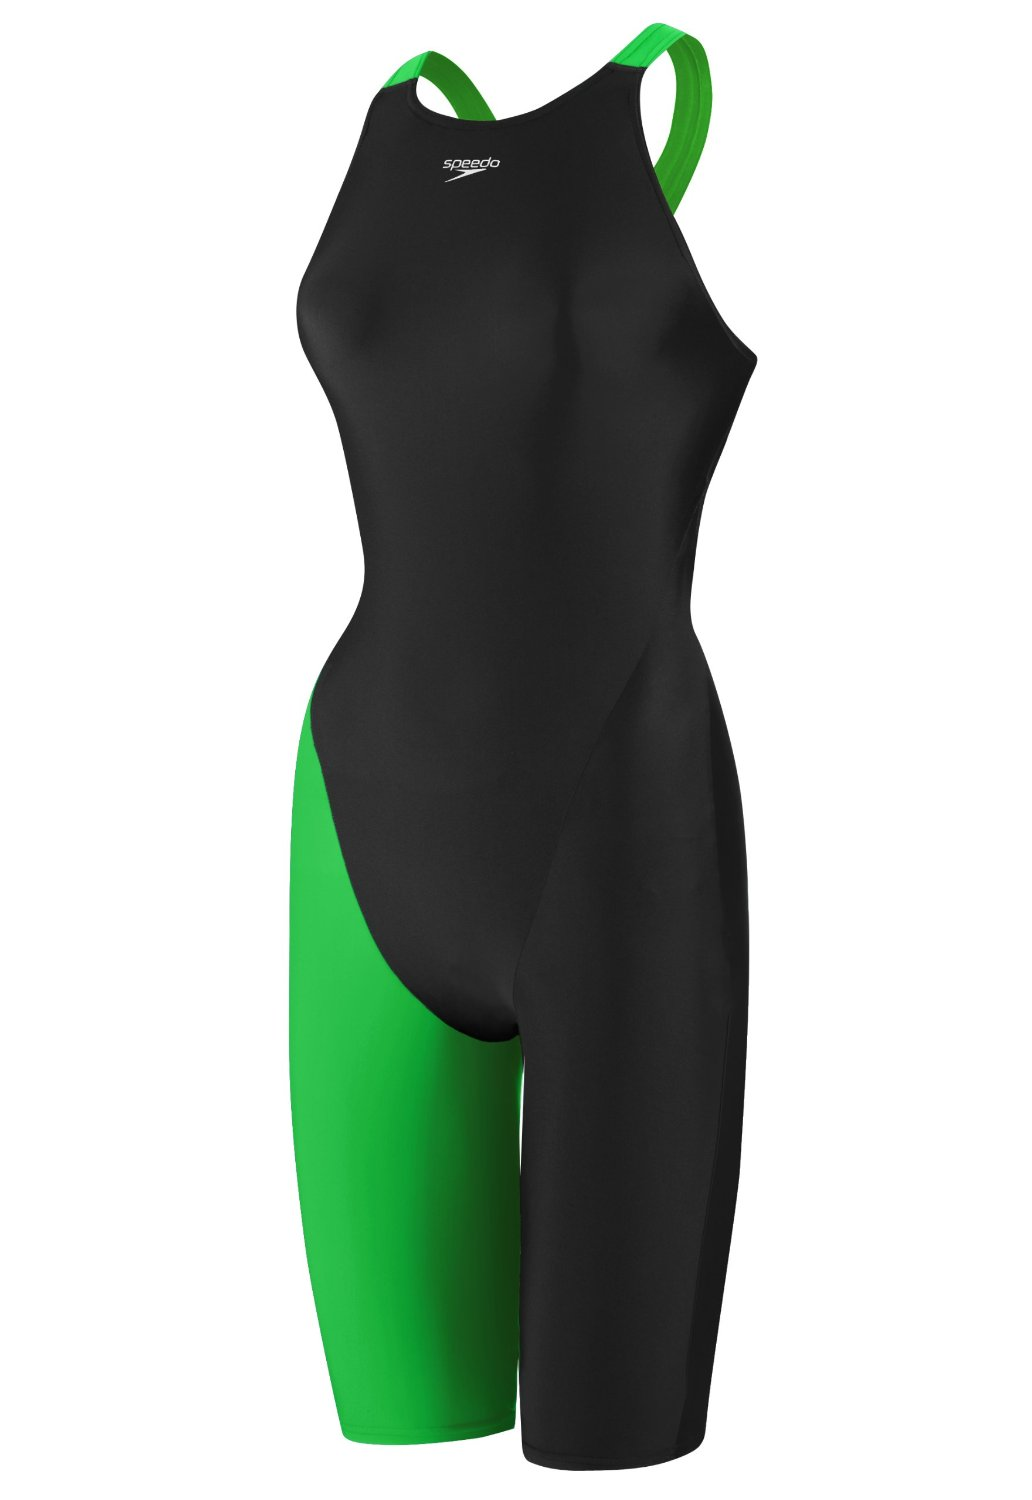 SPEEDO Fastskin LZR Racer� Elite 2 Recordbreaker Kneeskin (25L-29 Only) 7190700, 7190804, 7190804_Color